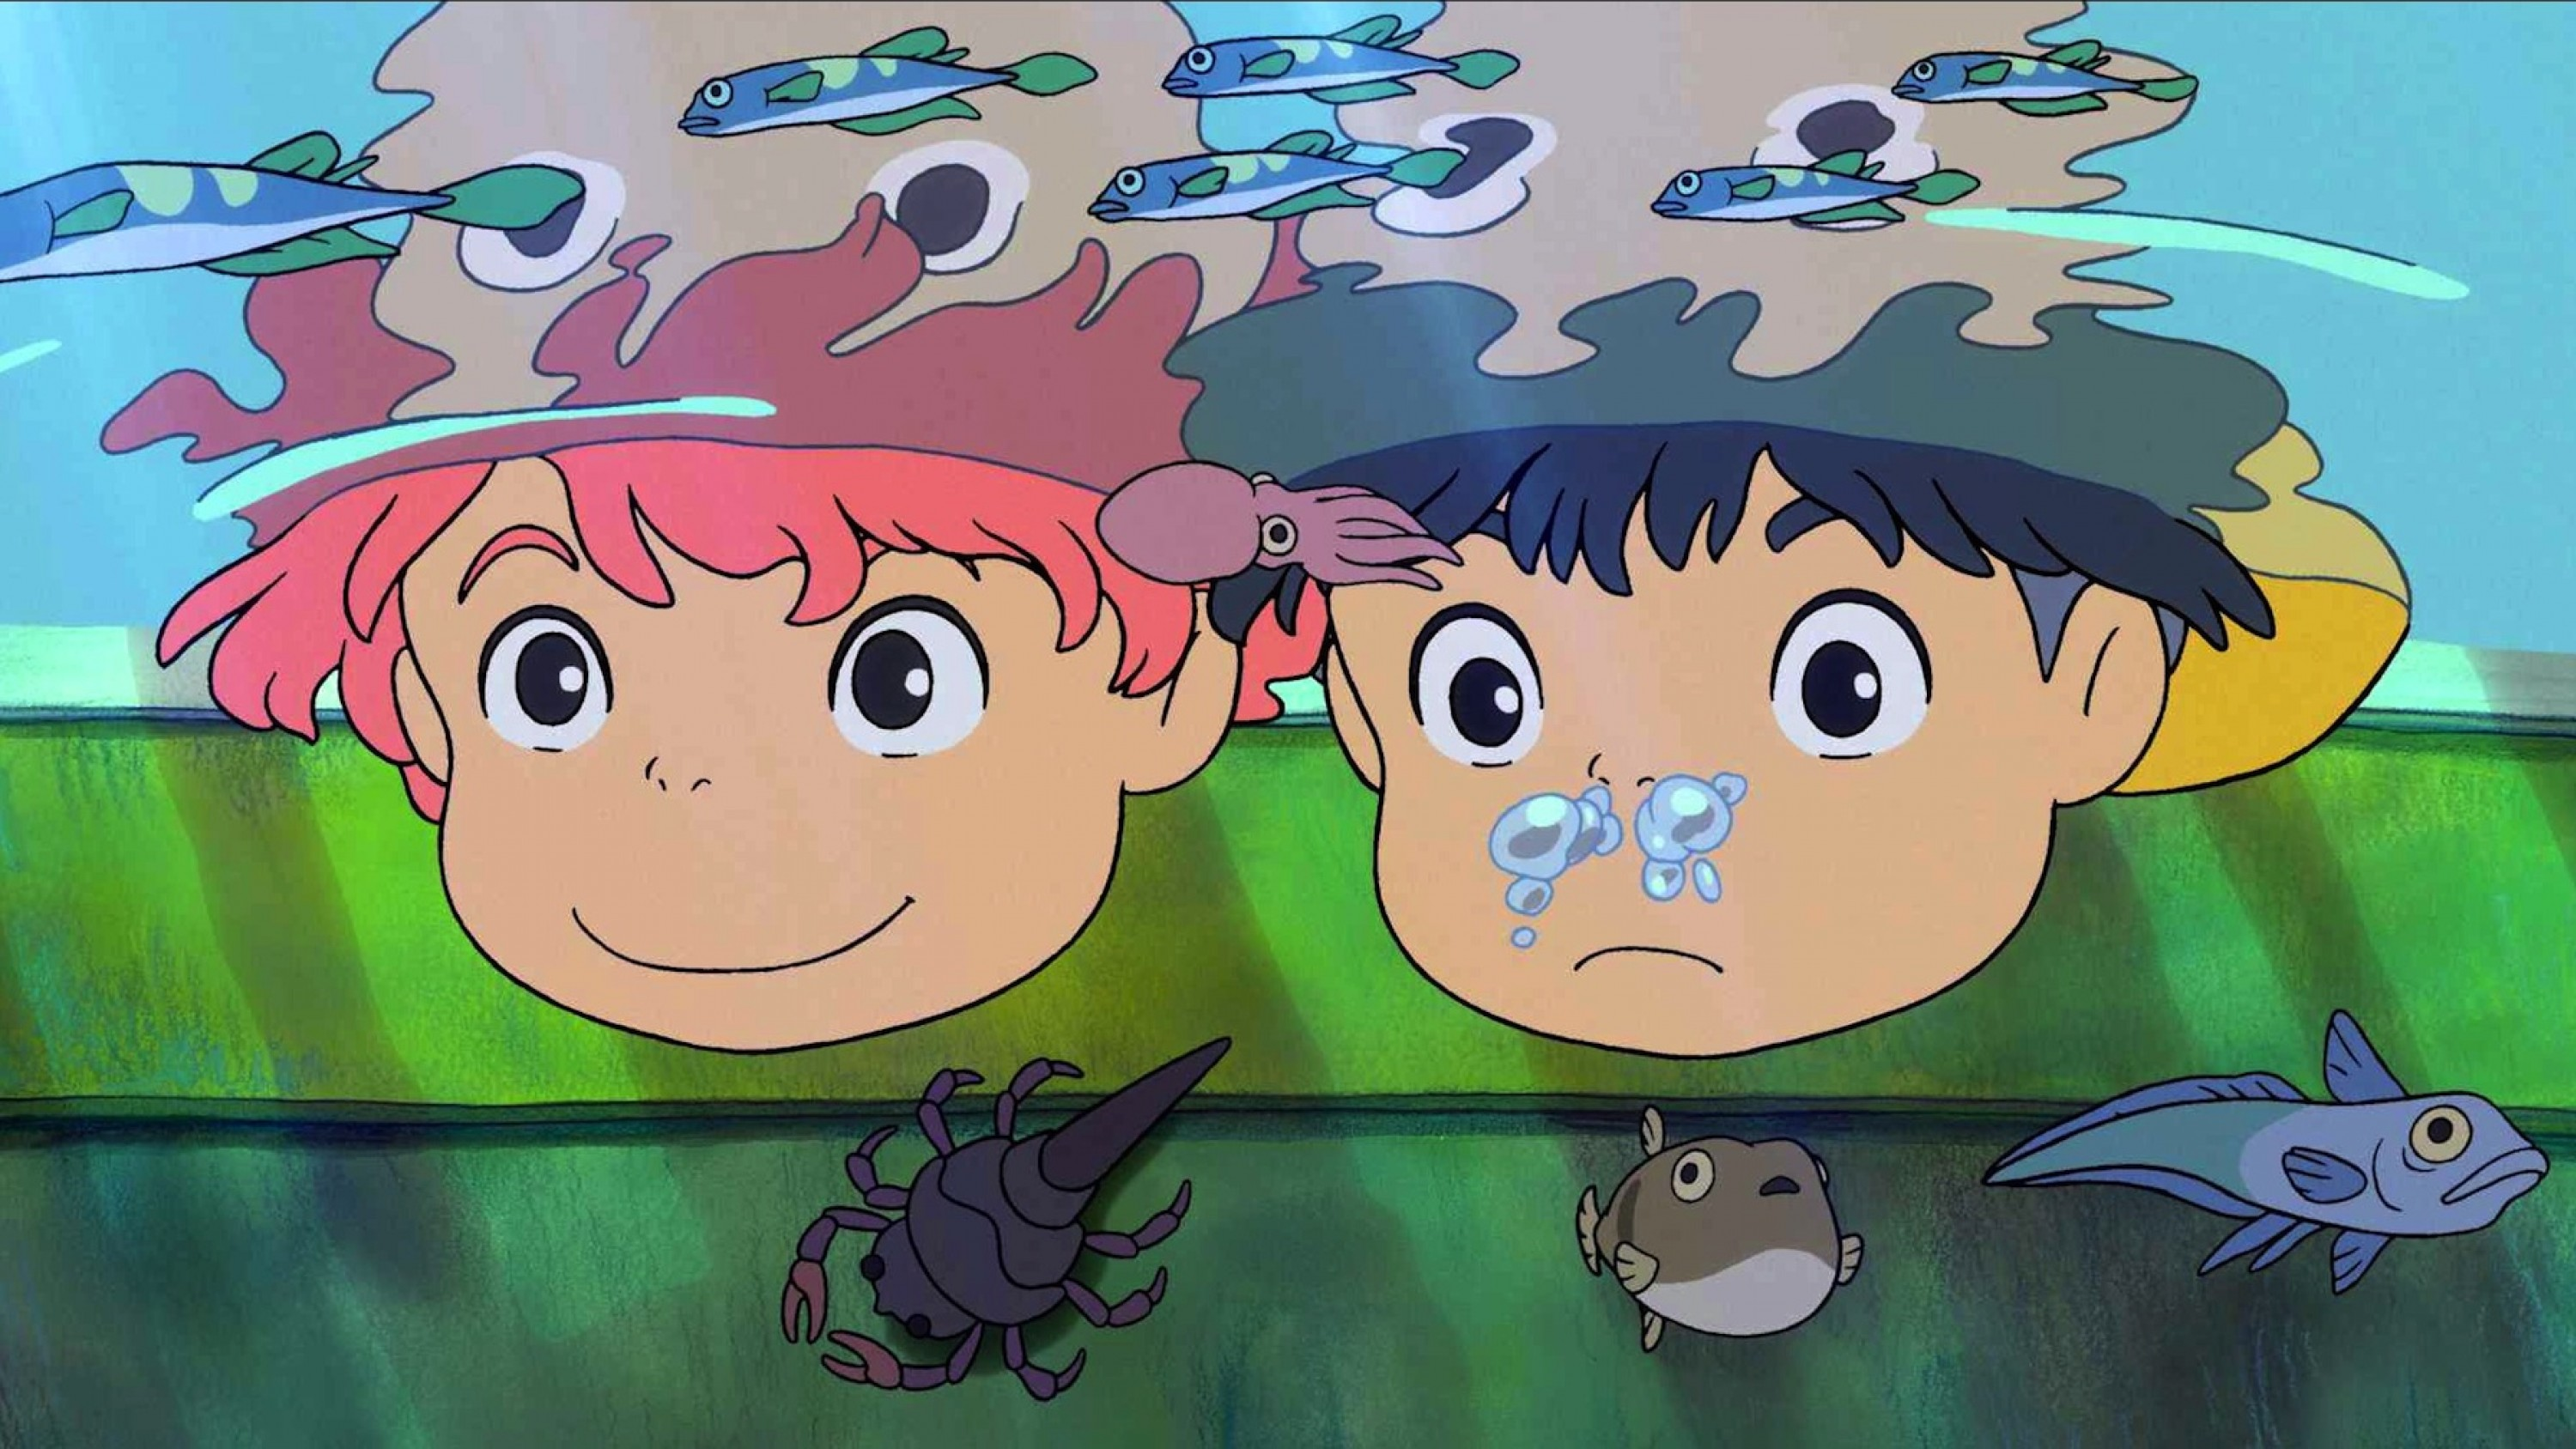 Resource - Ponyo: Film Guide - Into Film